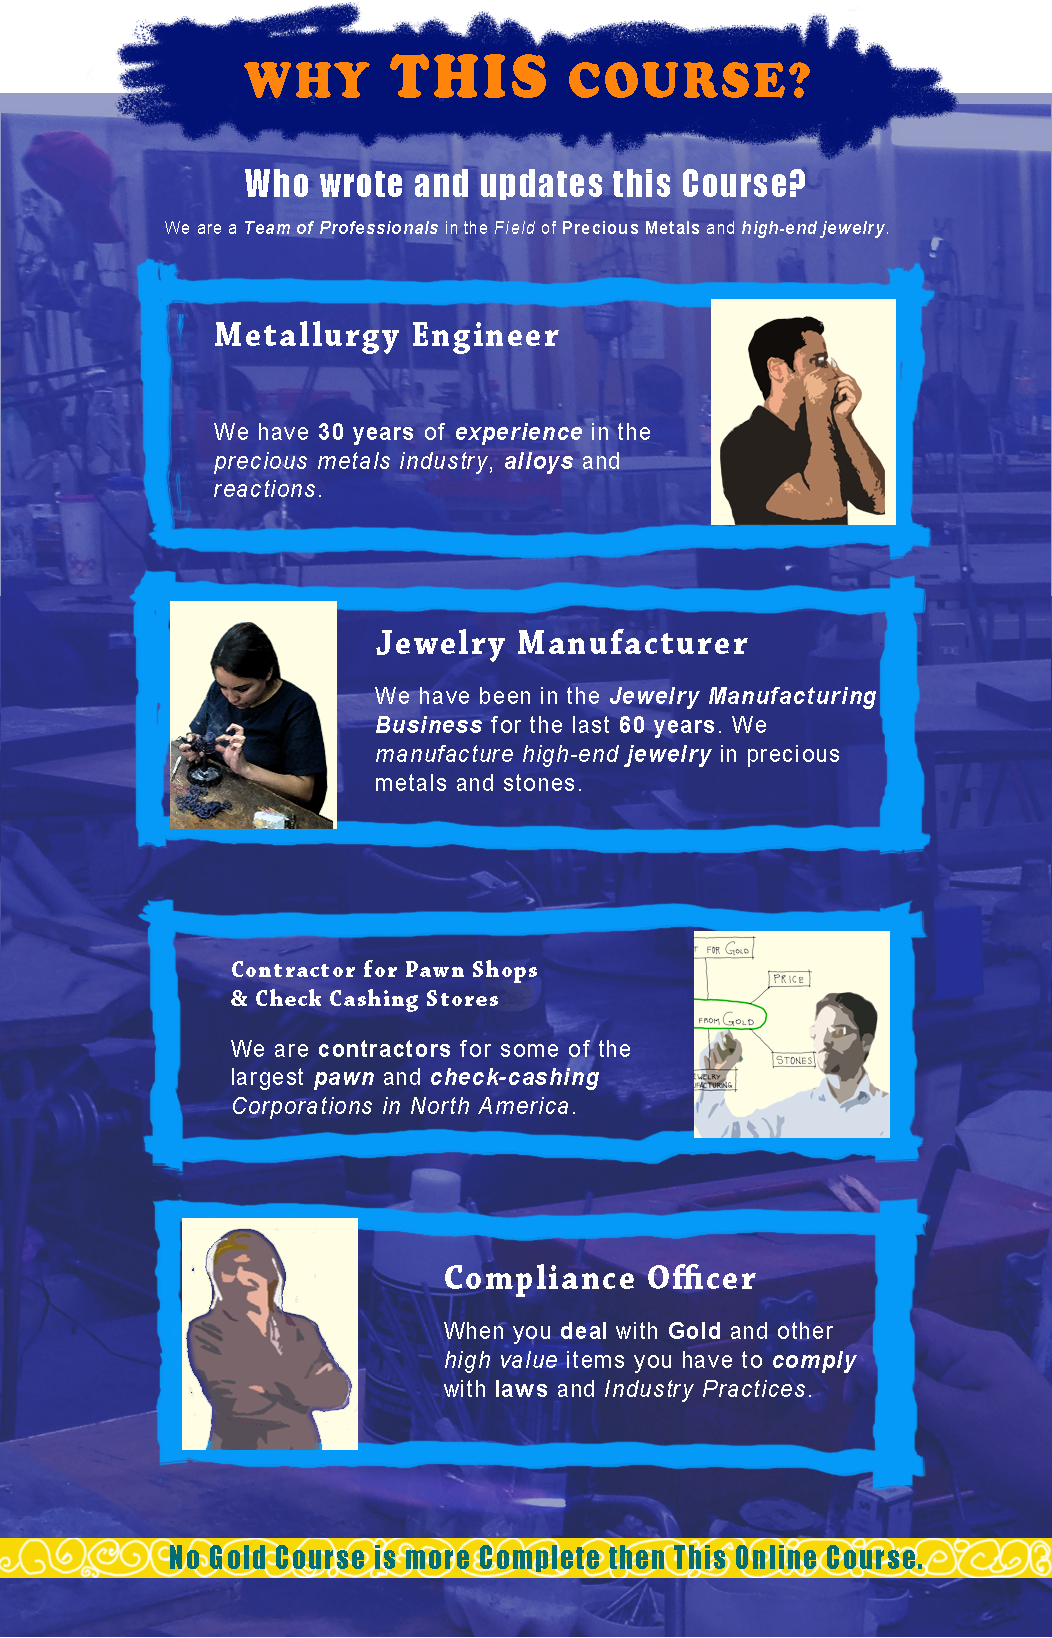 M8-Course-Team-who-we-are-metallurgy-engineer-jeweler-manufacturing-consultant-pawnshops-checkcashing-compliance-officer